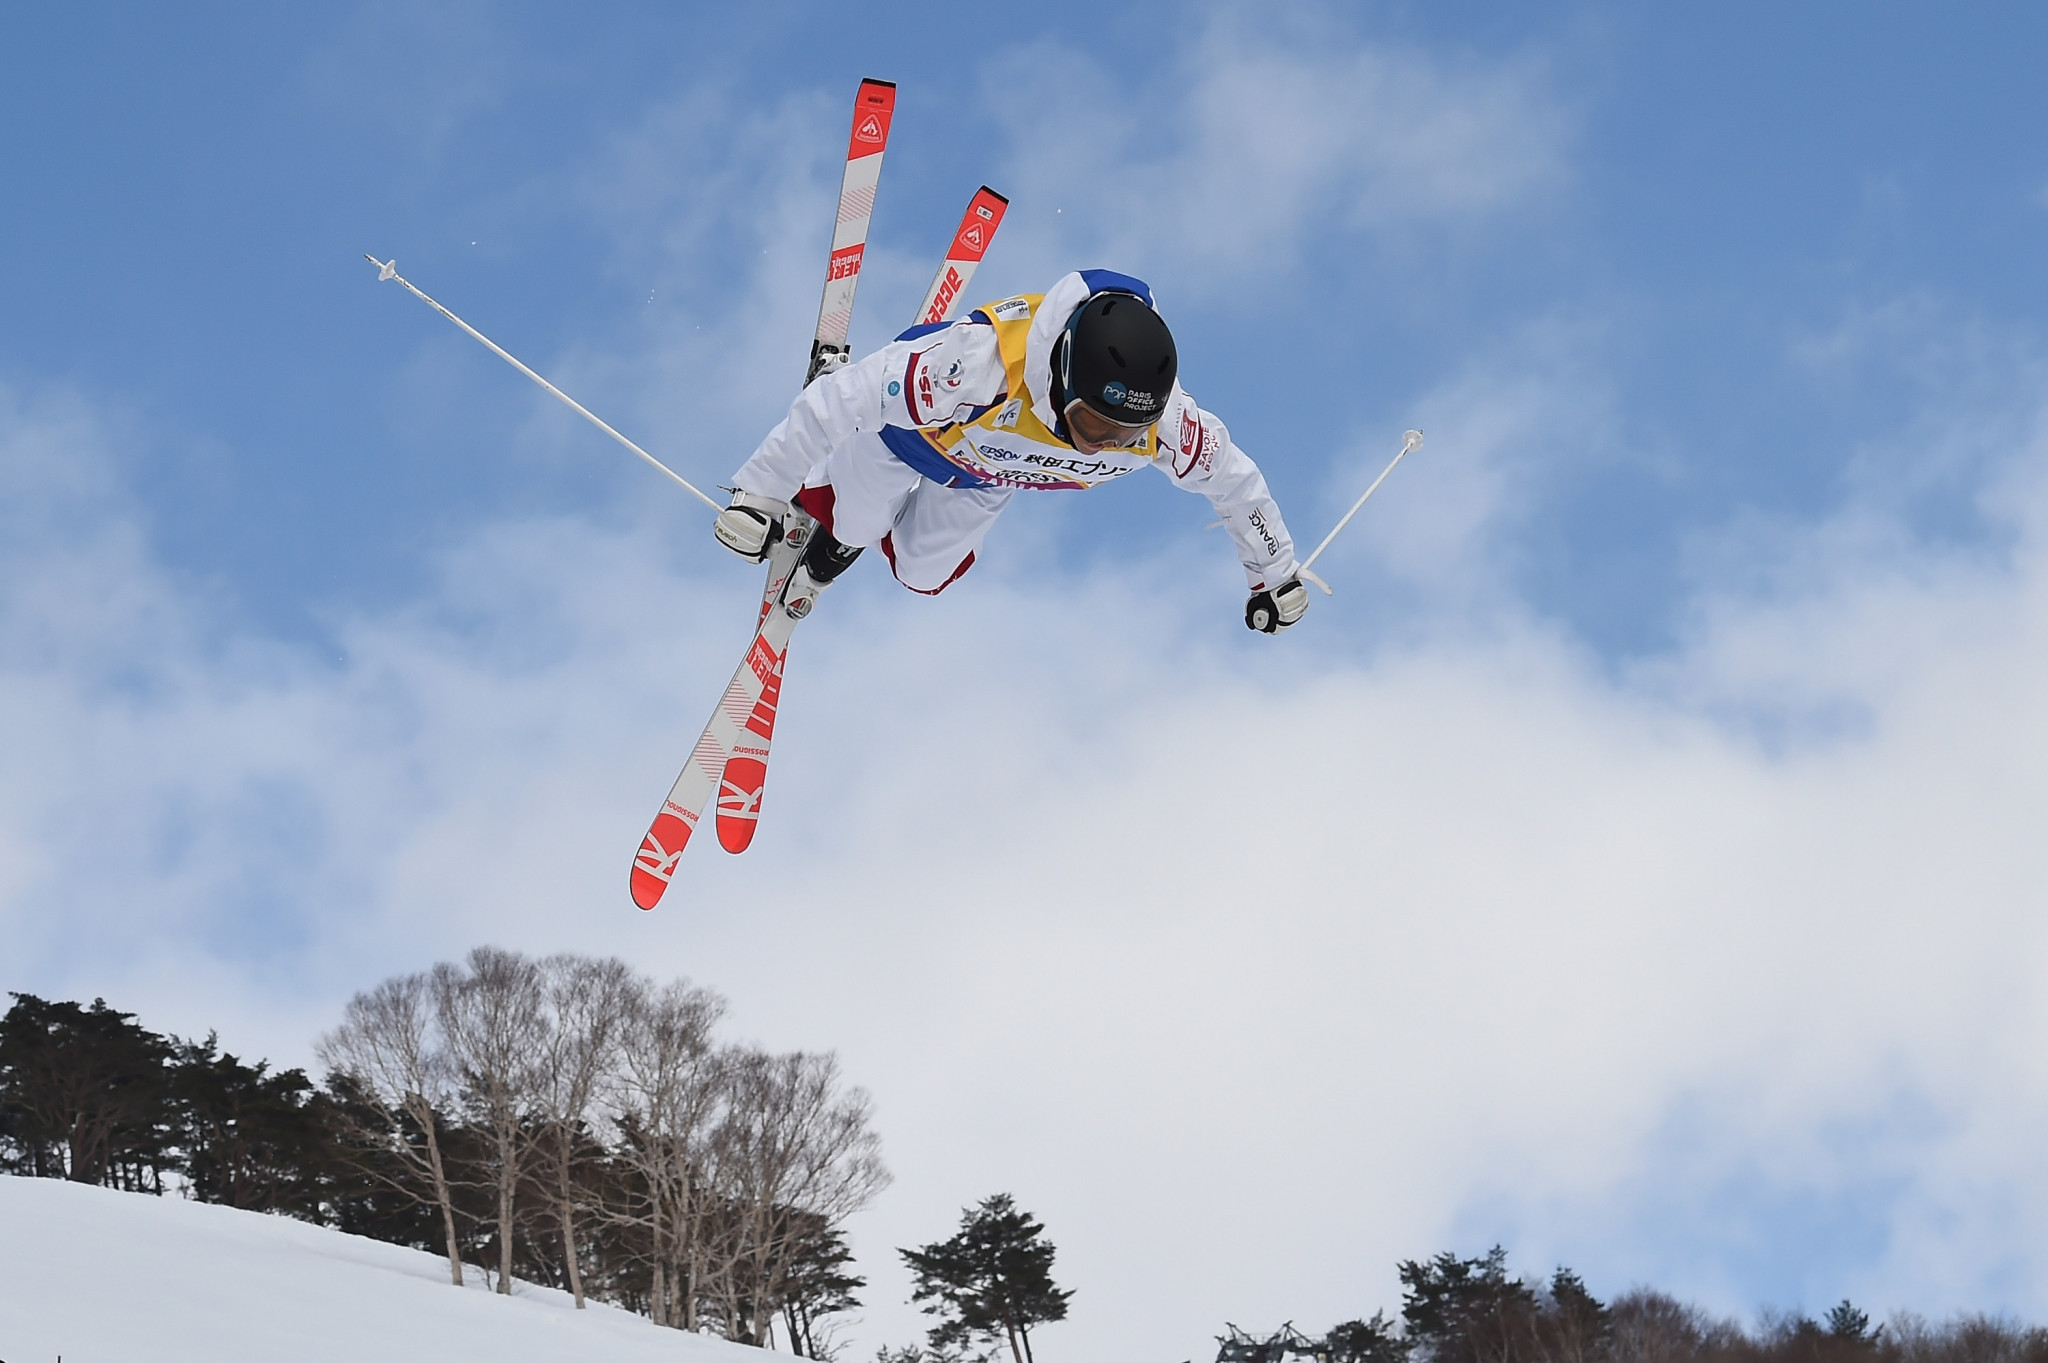 Laffont bidding to seal defence of women's overall title with FIS Moguls World Cup set to conclude in Kazakhstan